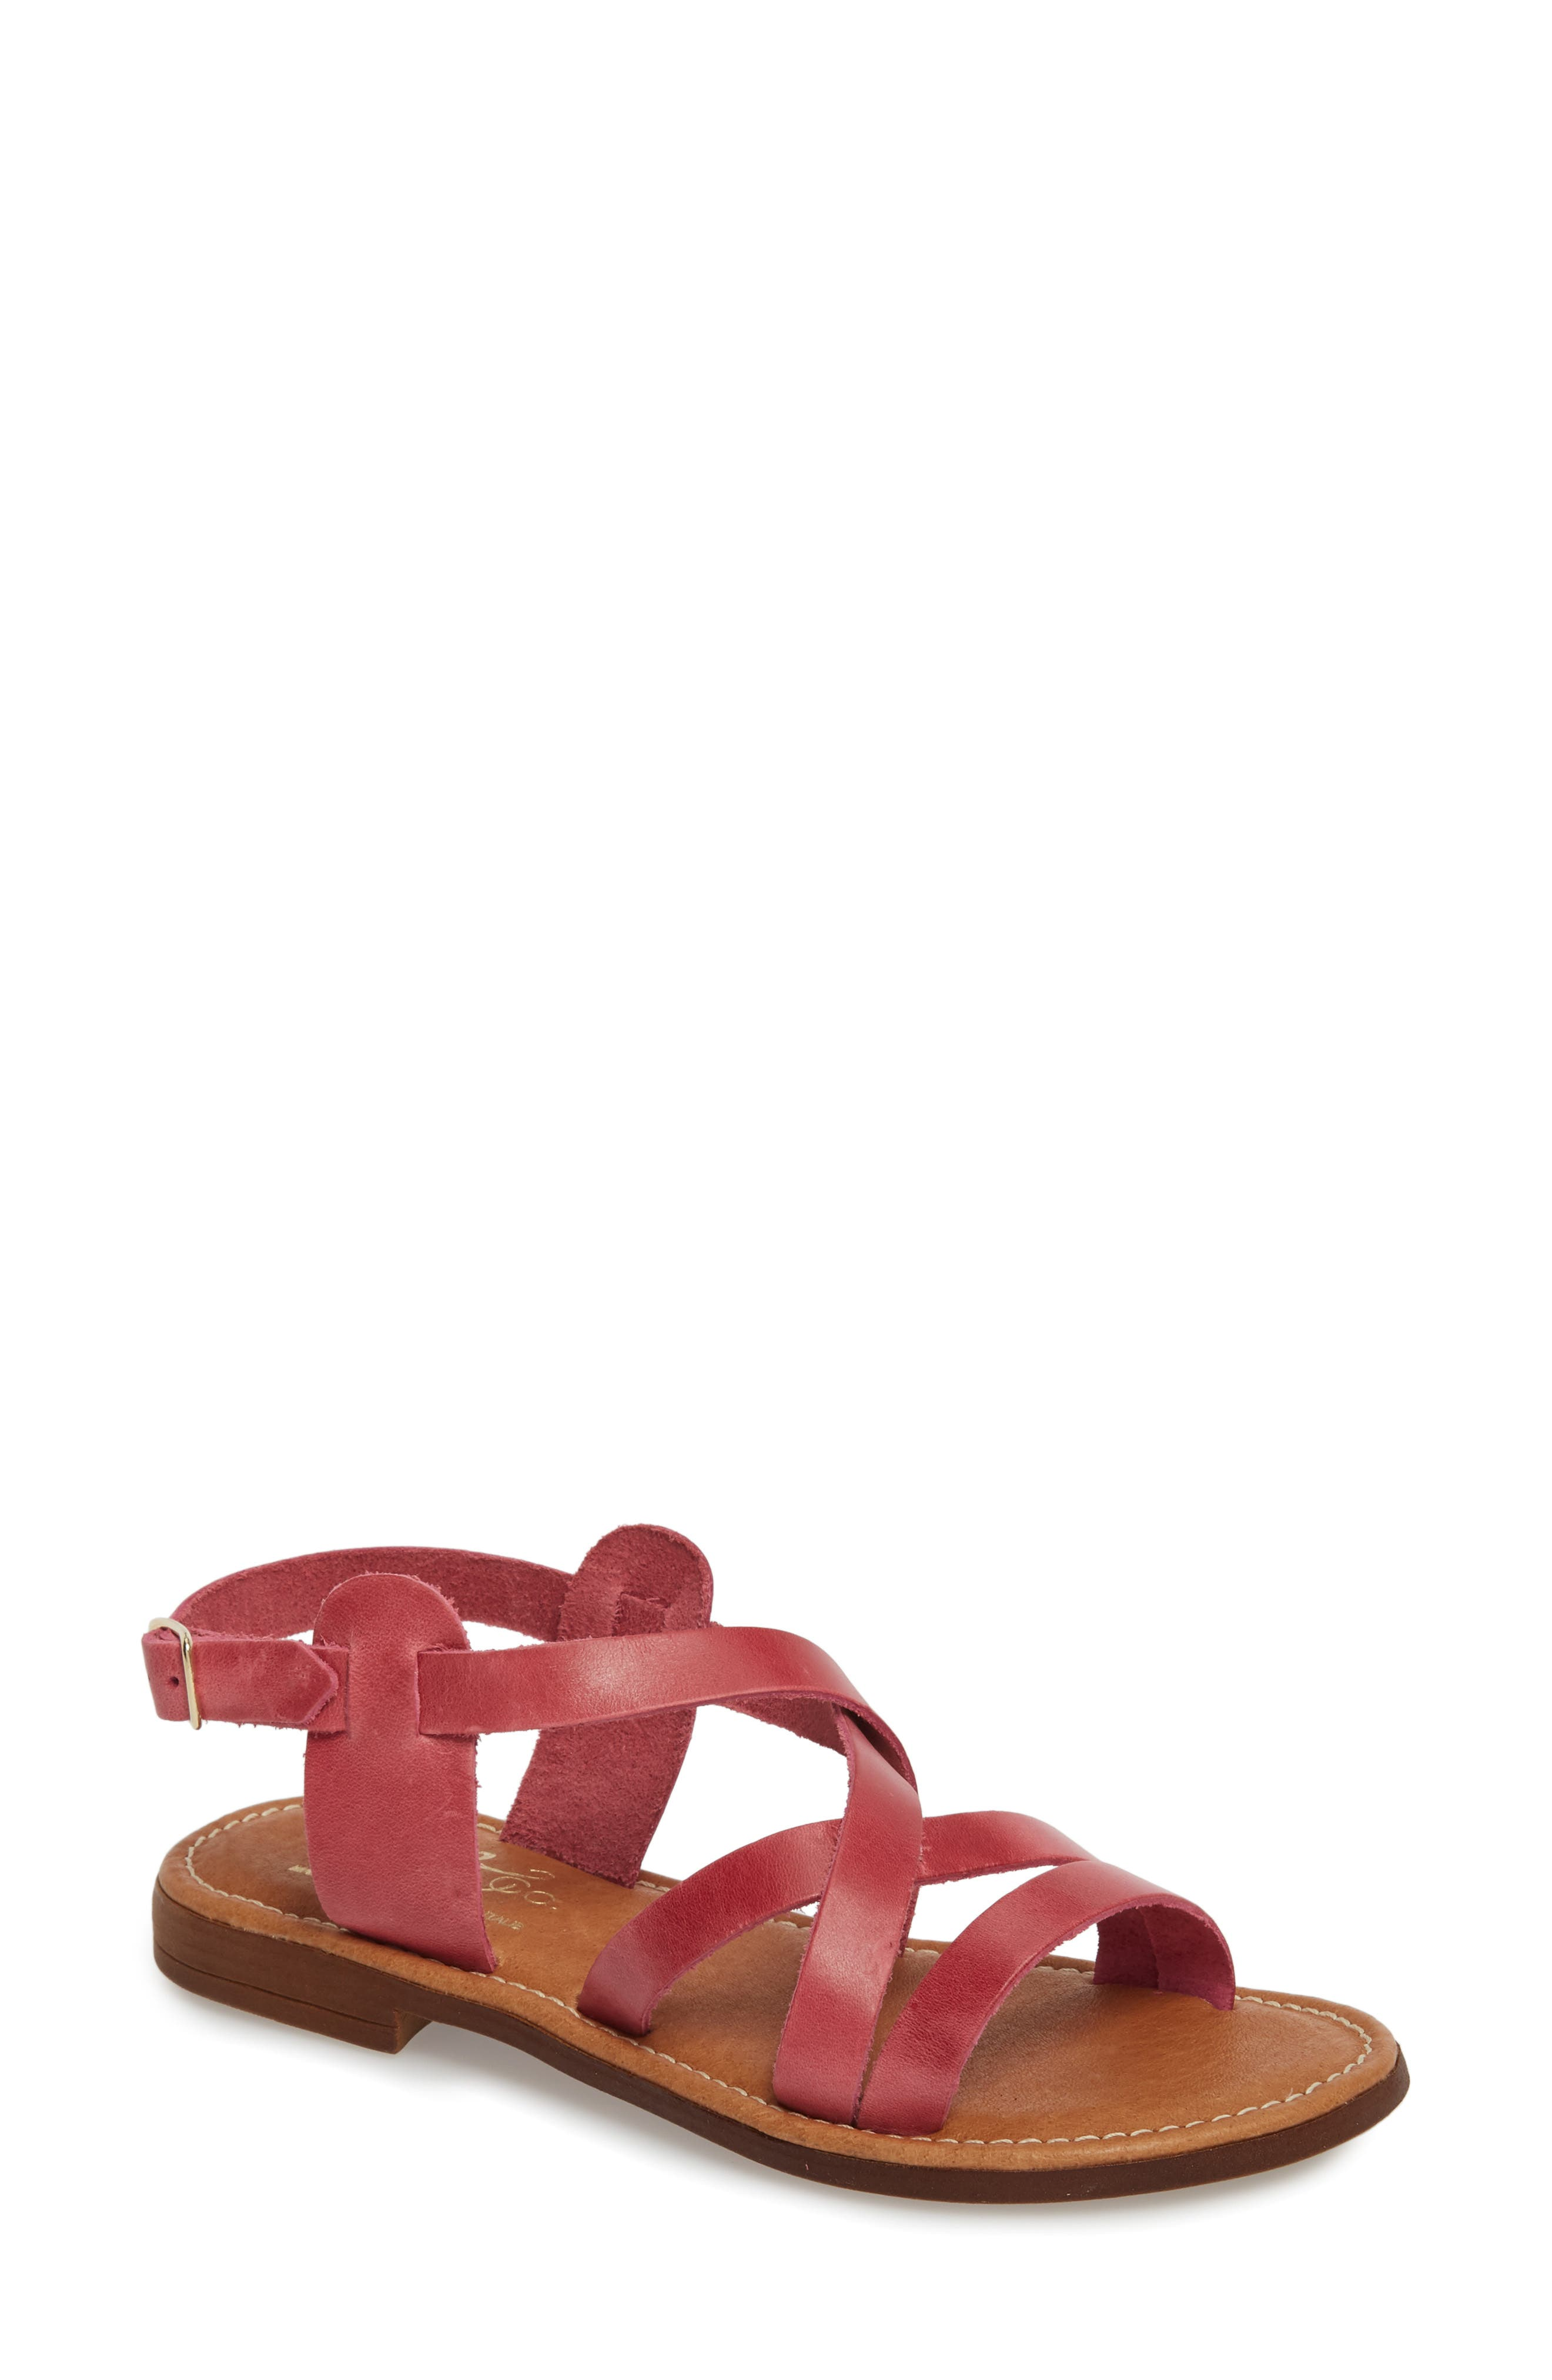 Bos. & Co. Ionna Sandal - Pink